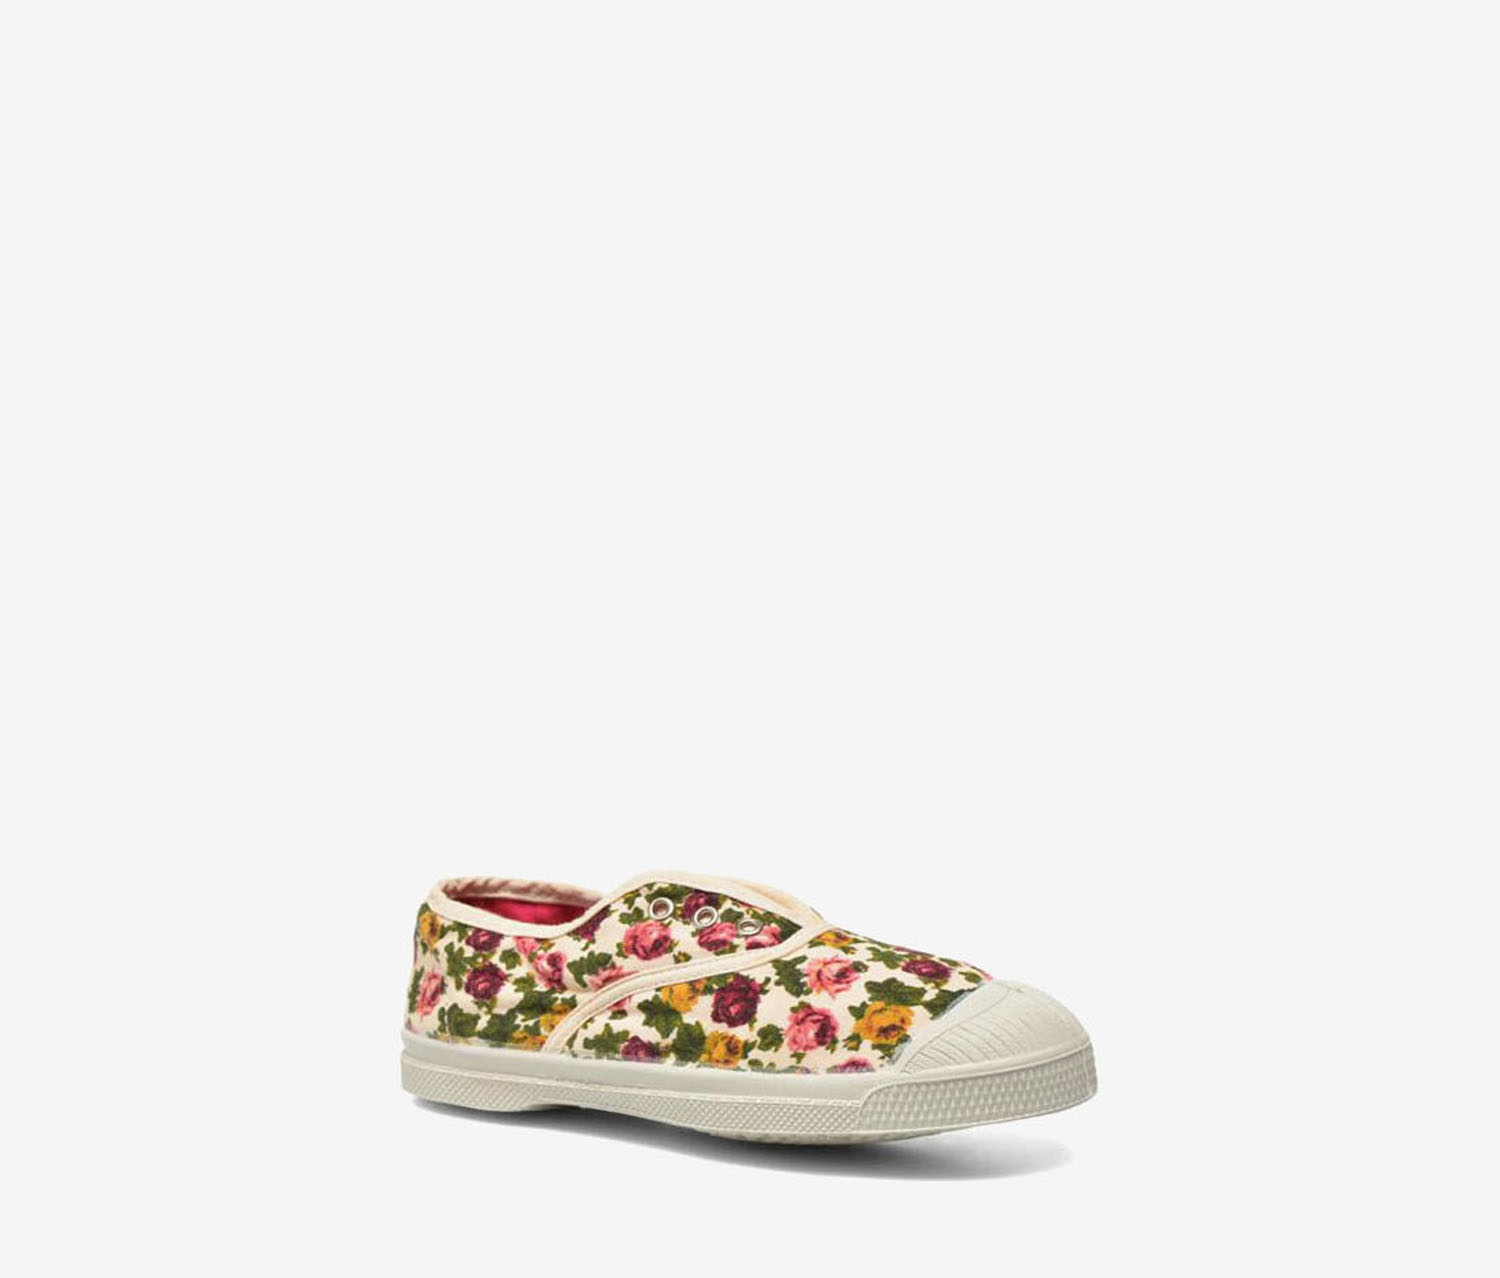 Bensimon Baby Girl's Floral Sneakers, Red/Pink/Off White